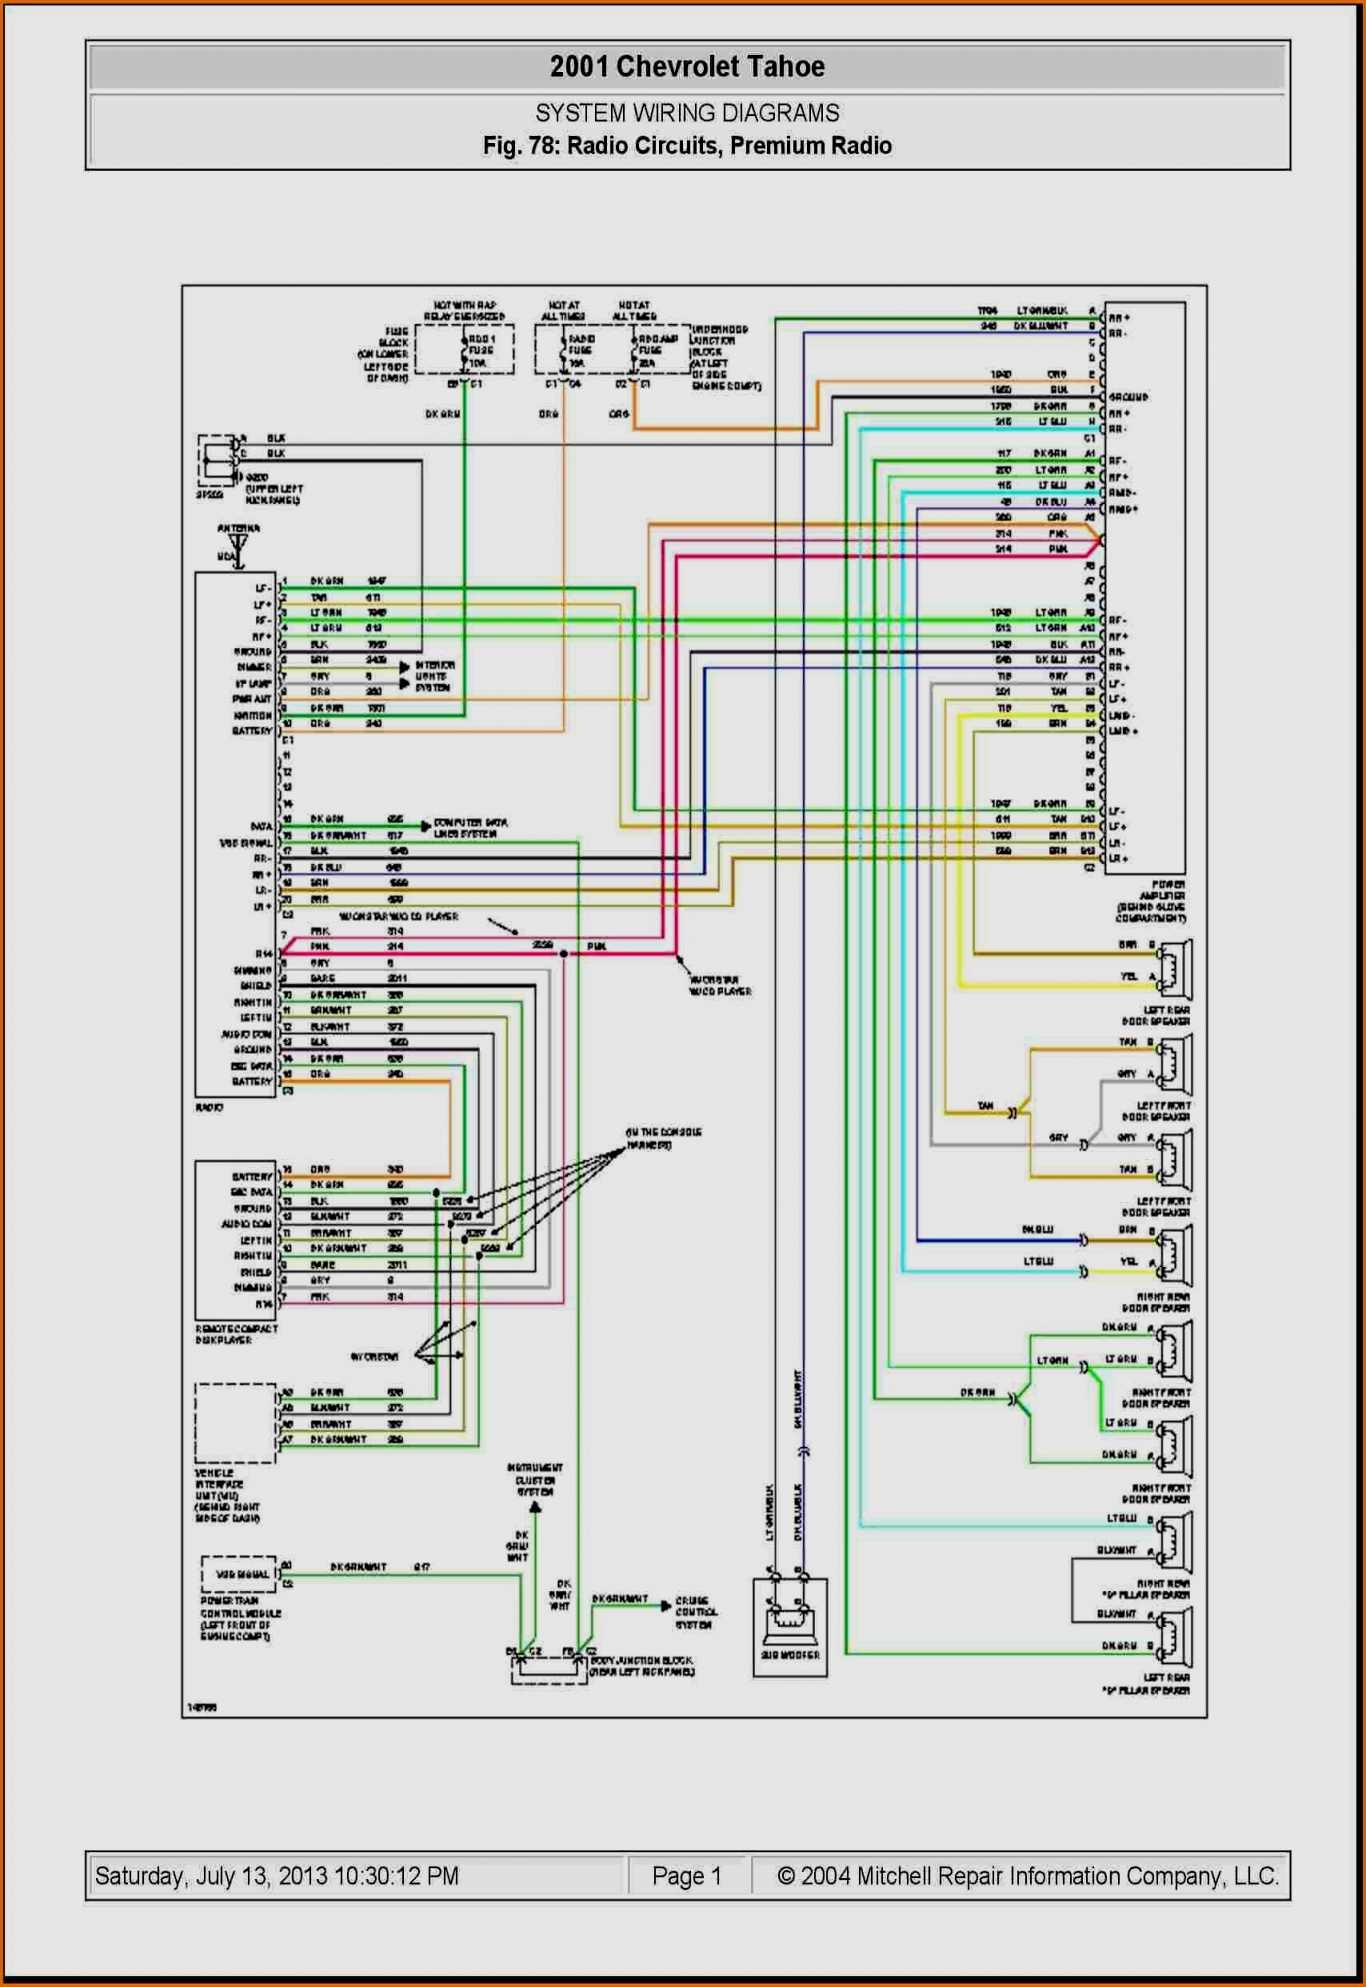 2004 Gmc Sierra Wiring Diagram 2005 Gmc Envoy Radio Wiring Harness Of 2004 Gmc Sierra Wiring Diagram